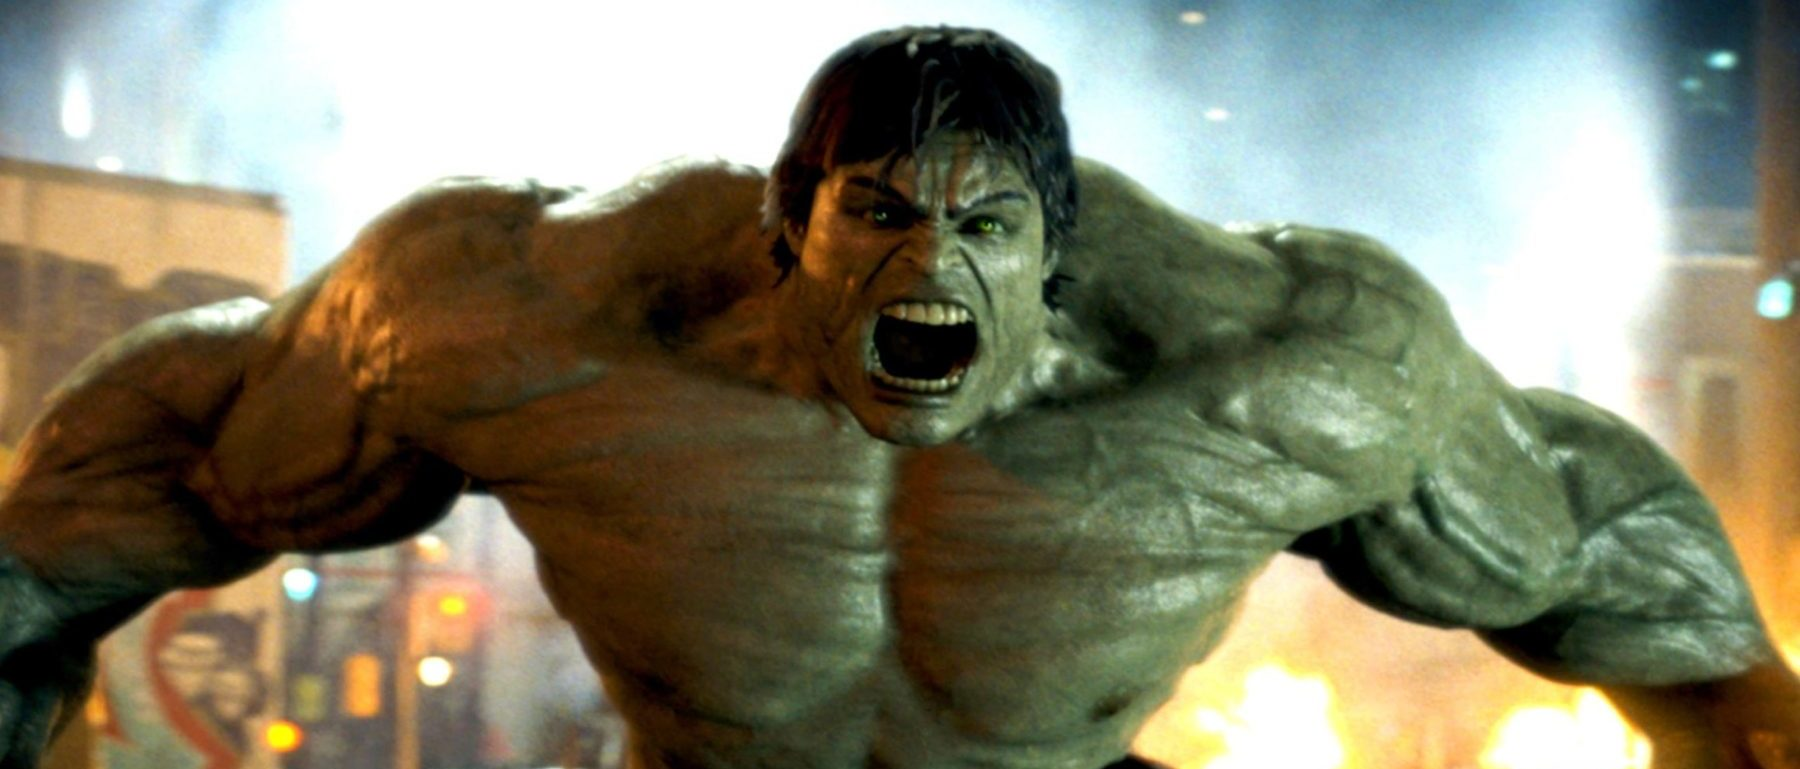 Edward Norton as Hulk in The Incredible Hulk